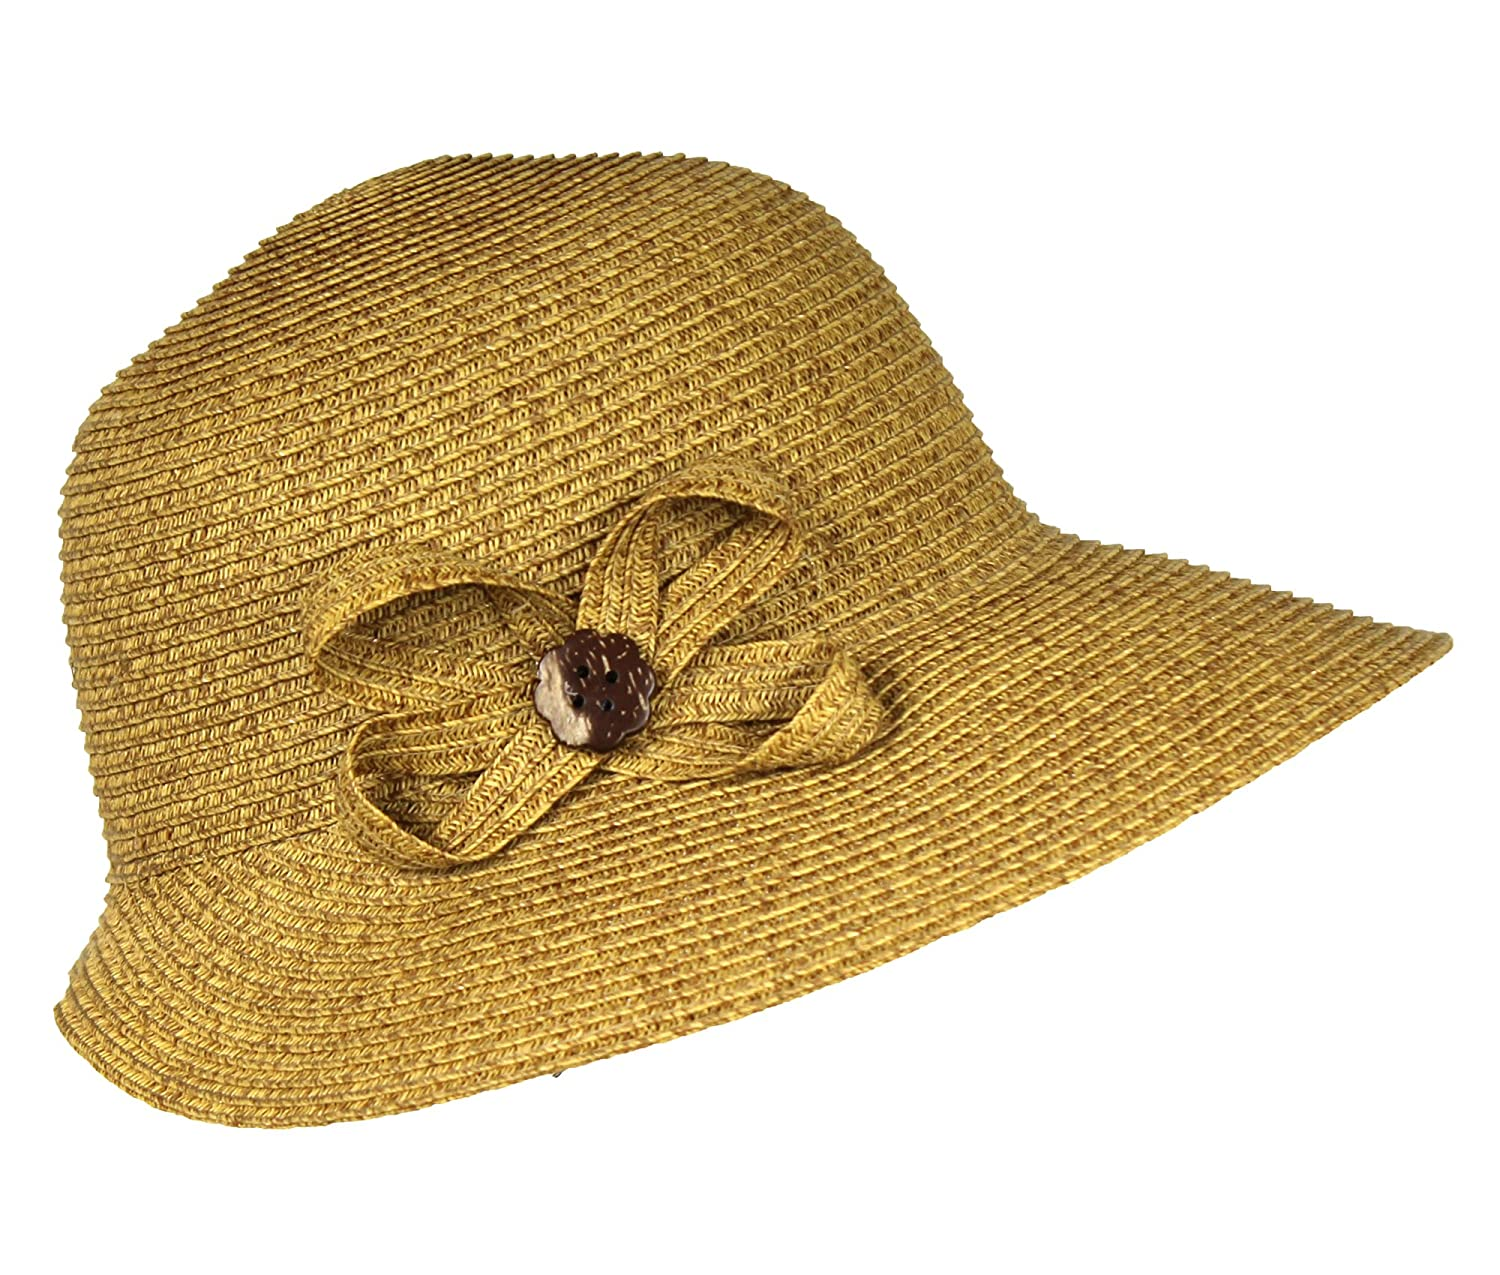 1920s Accessories | Great Gatsby Accessories Guide SPF 50+ Packable Straw Cloche Sun Hat w/ Flower – UV Blocking Summer Bucket Cap $21.99 AT vintagedancer.com